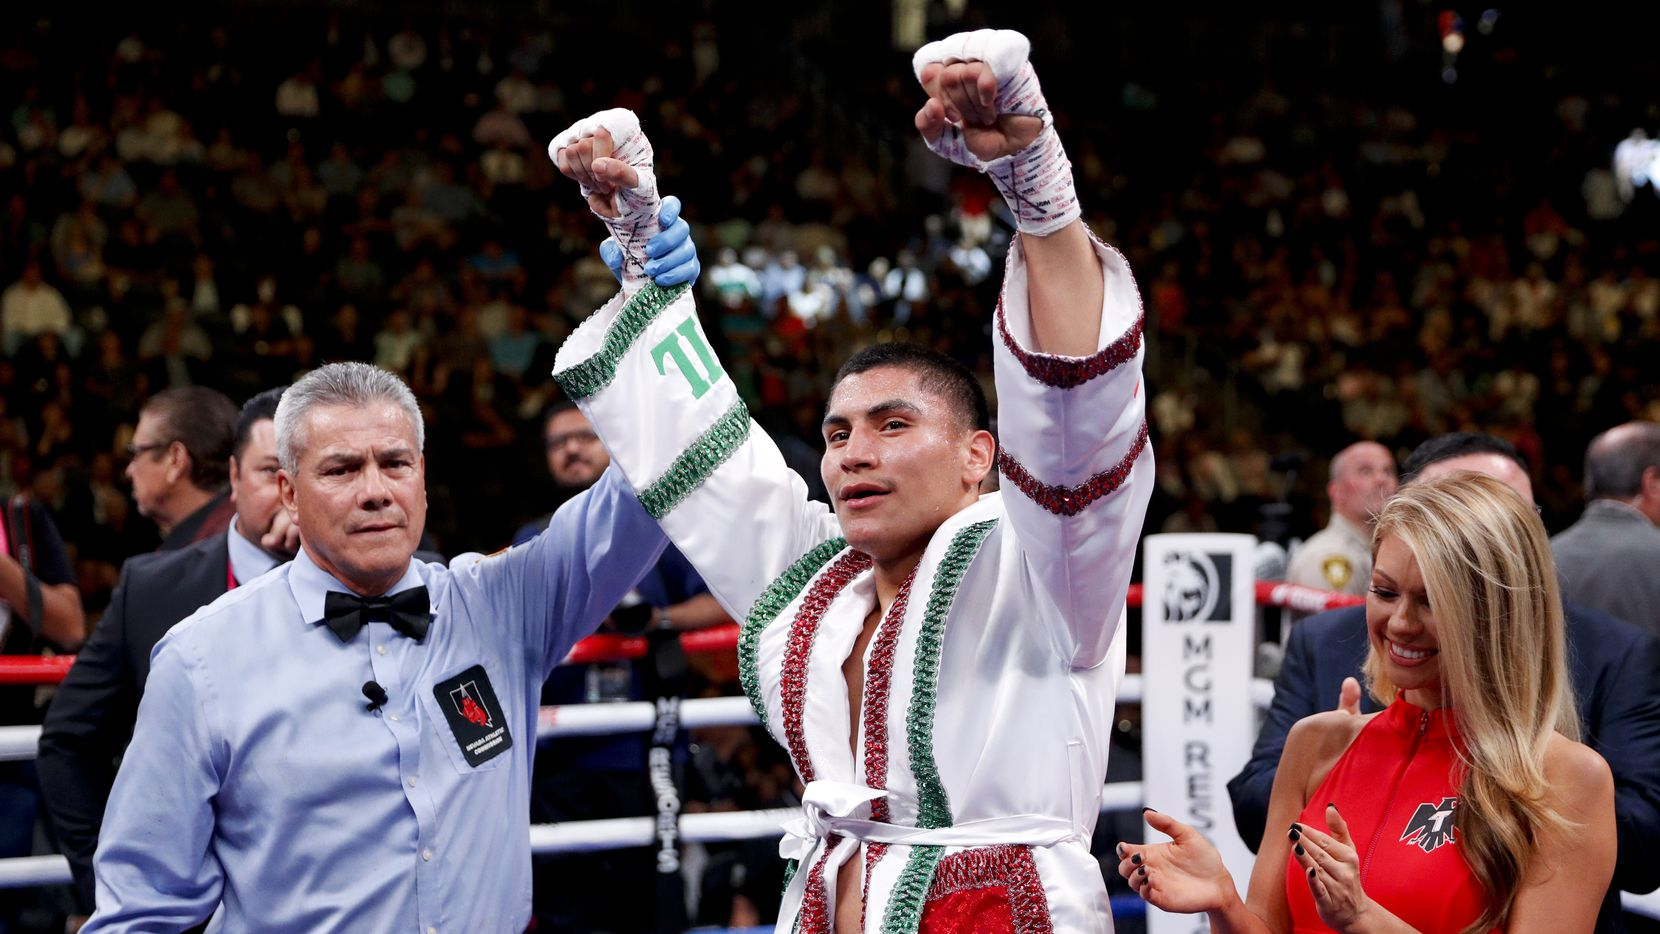 Vergil Ortiz Jr. celebrates his win against Mauricio Herrera in a welterweight boxing match Saturday, May 4, 2019, in Las Vegas.